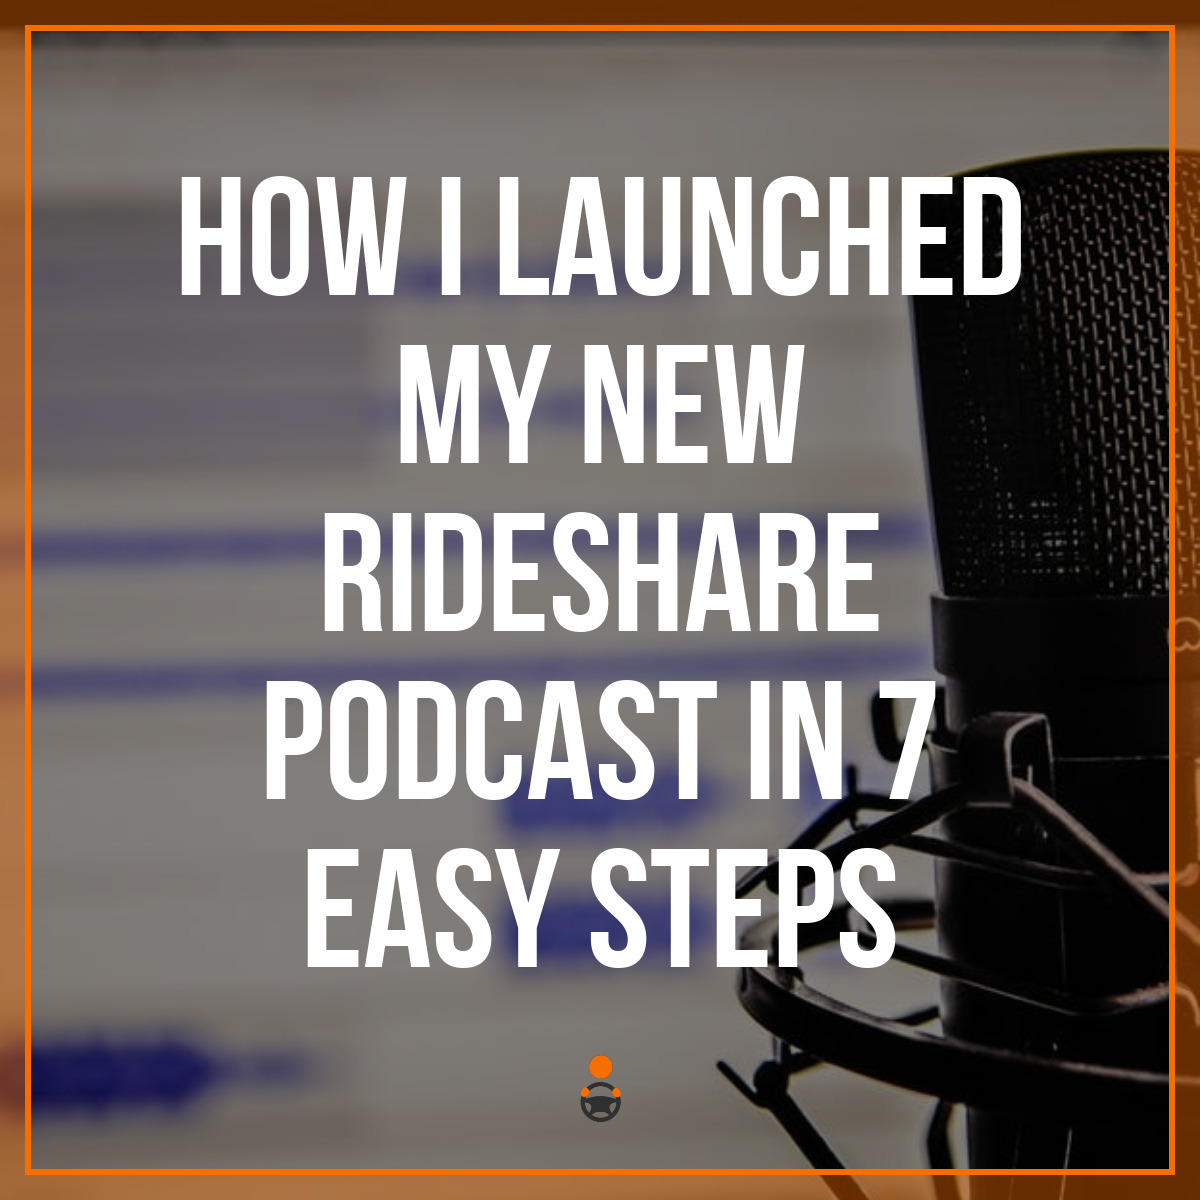 How I Launched My New Rideshare Podcast in 7 Easy Steps